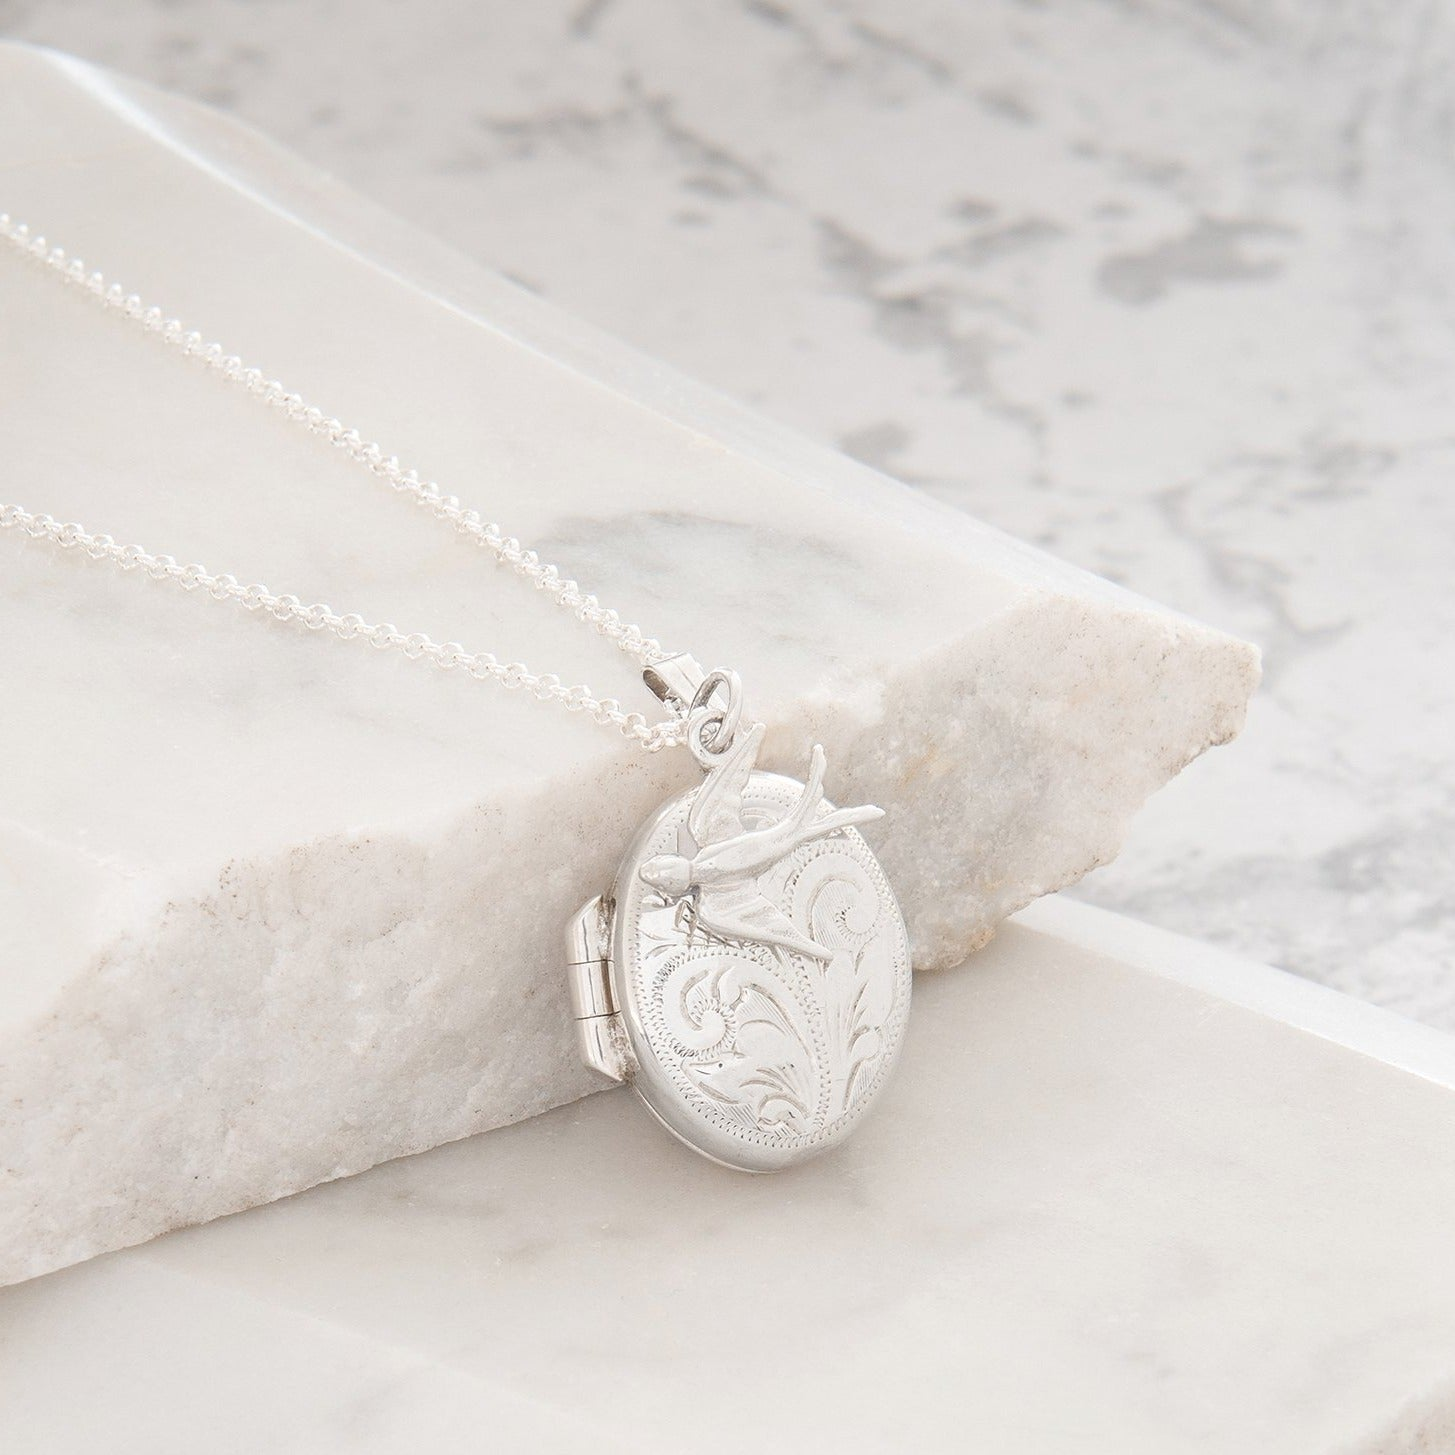 Personalised Engraved Oval Locket with Swallow Necklace Sterling Silver